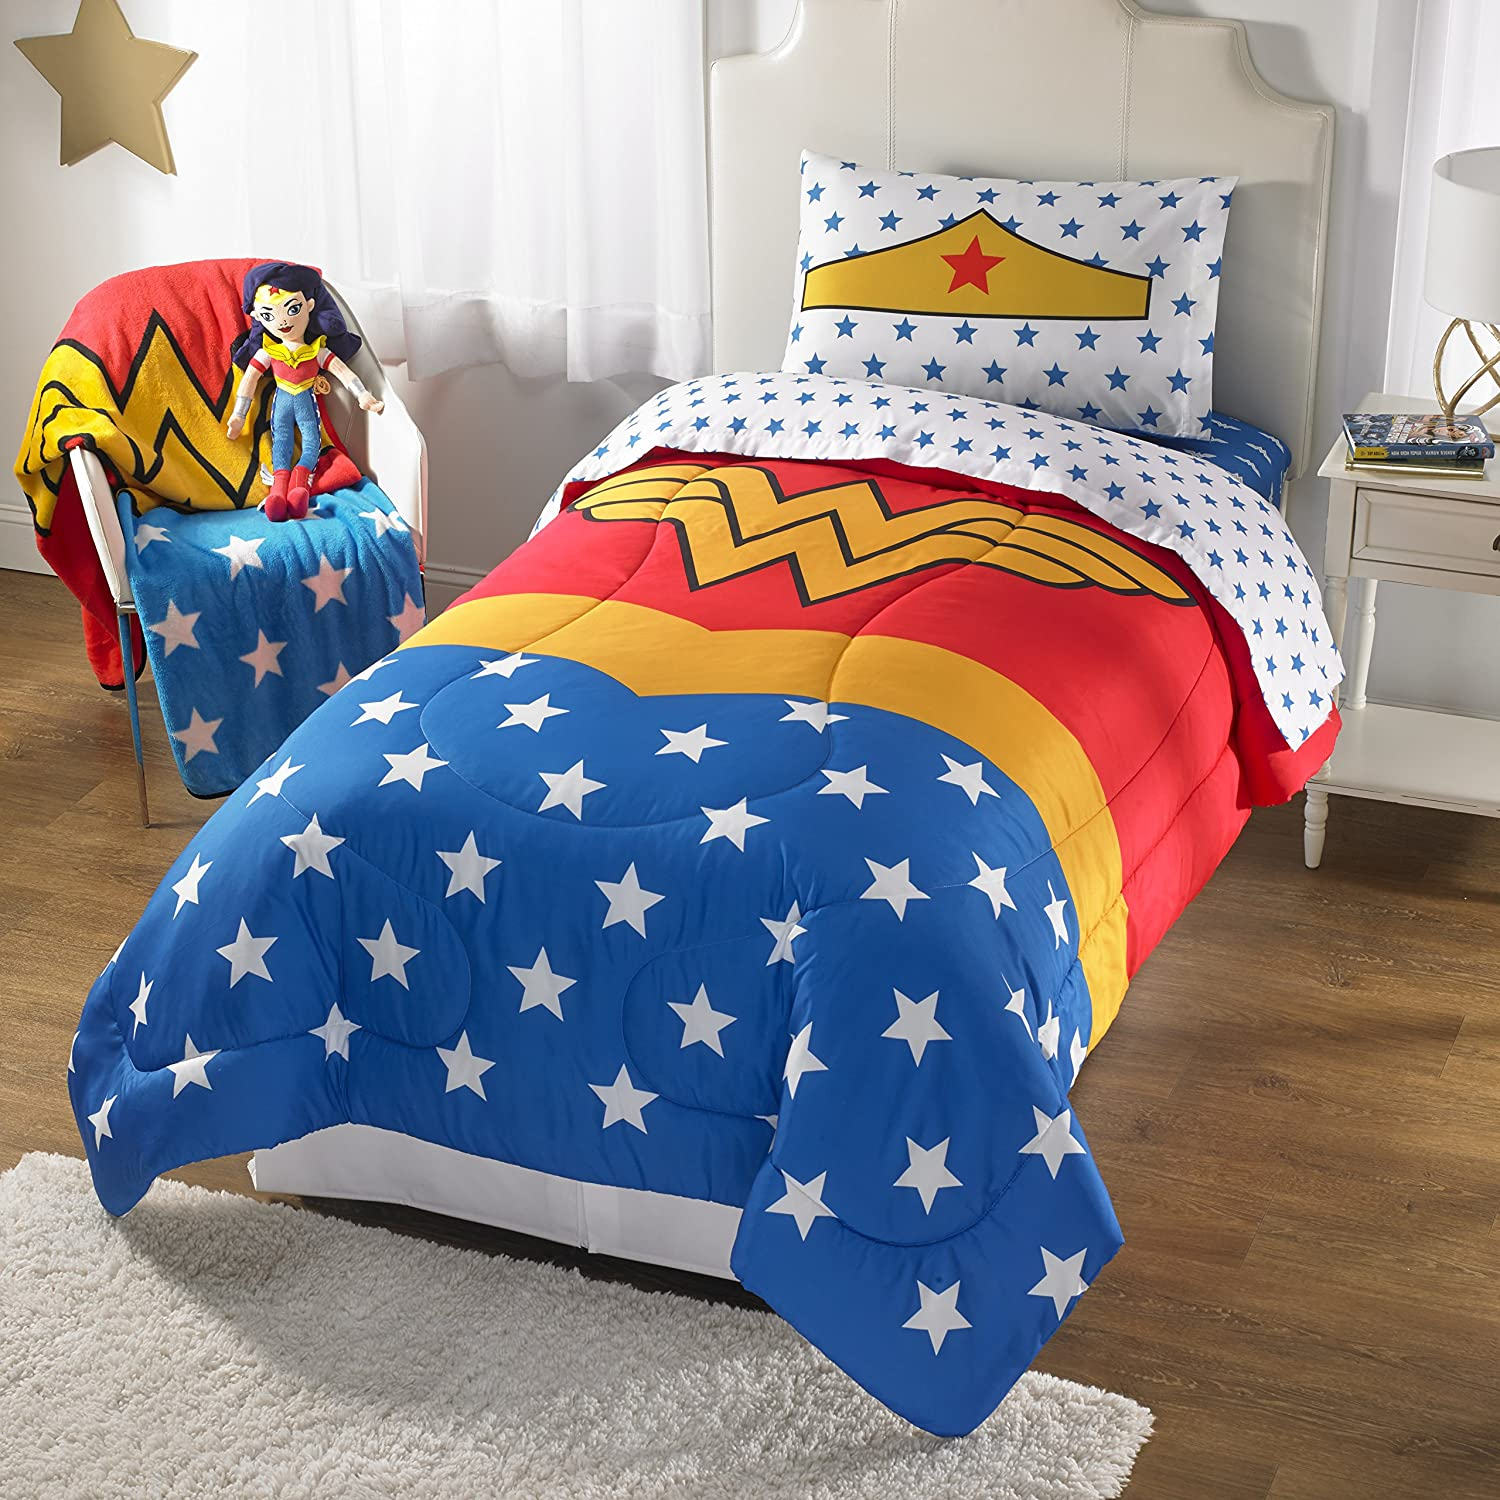 1 Piece Girls Dark Blue Wonder Woman Comforter Twin Full, Golden Red Color Comics Movie Characters Pattern Dc Comic Reversible Kids Bedding, Traditional Adventure Superhero Themed Teen, Polyester